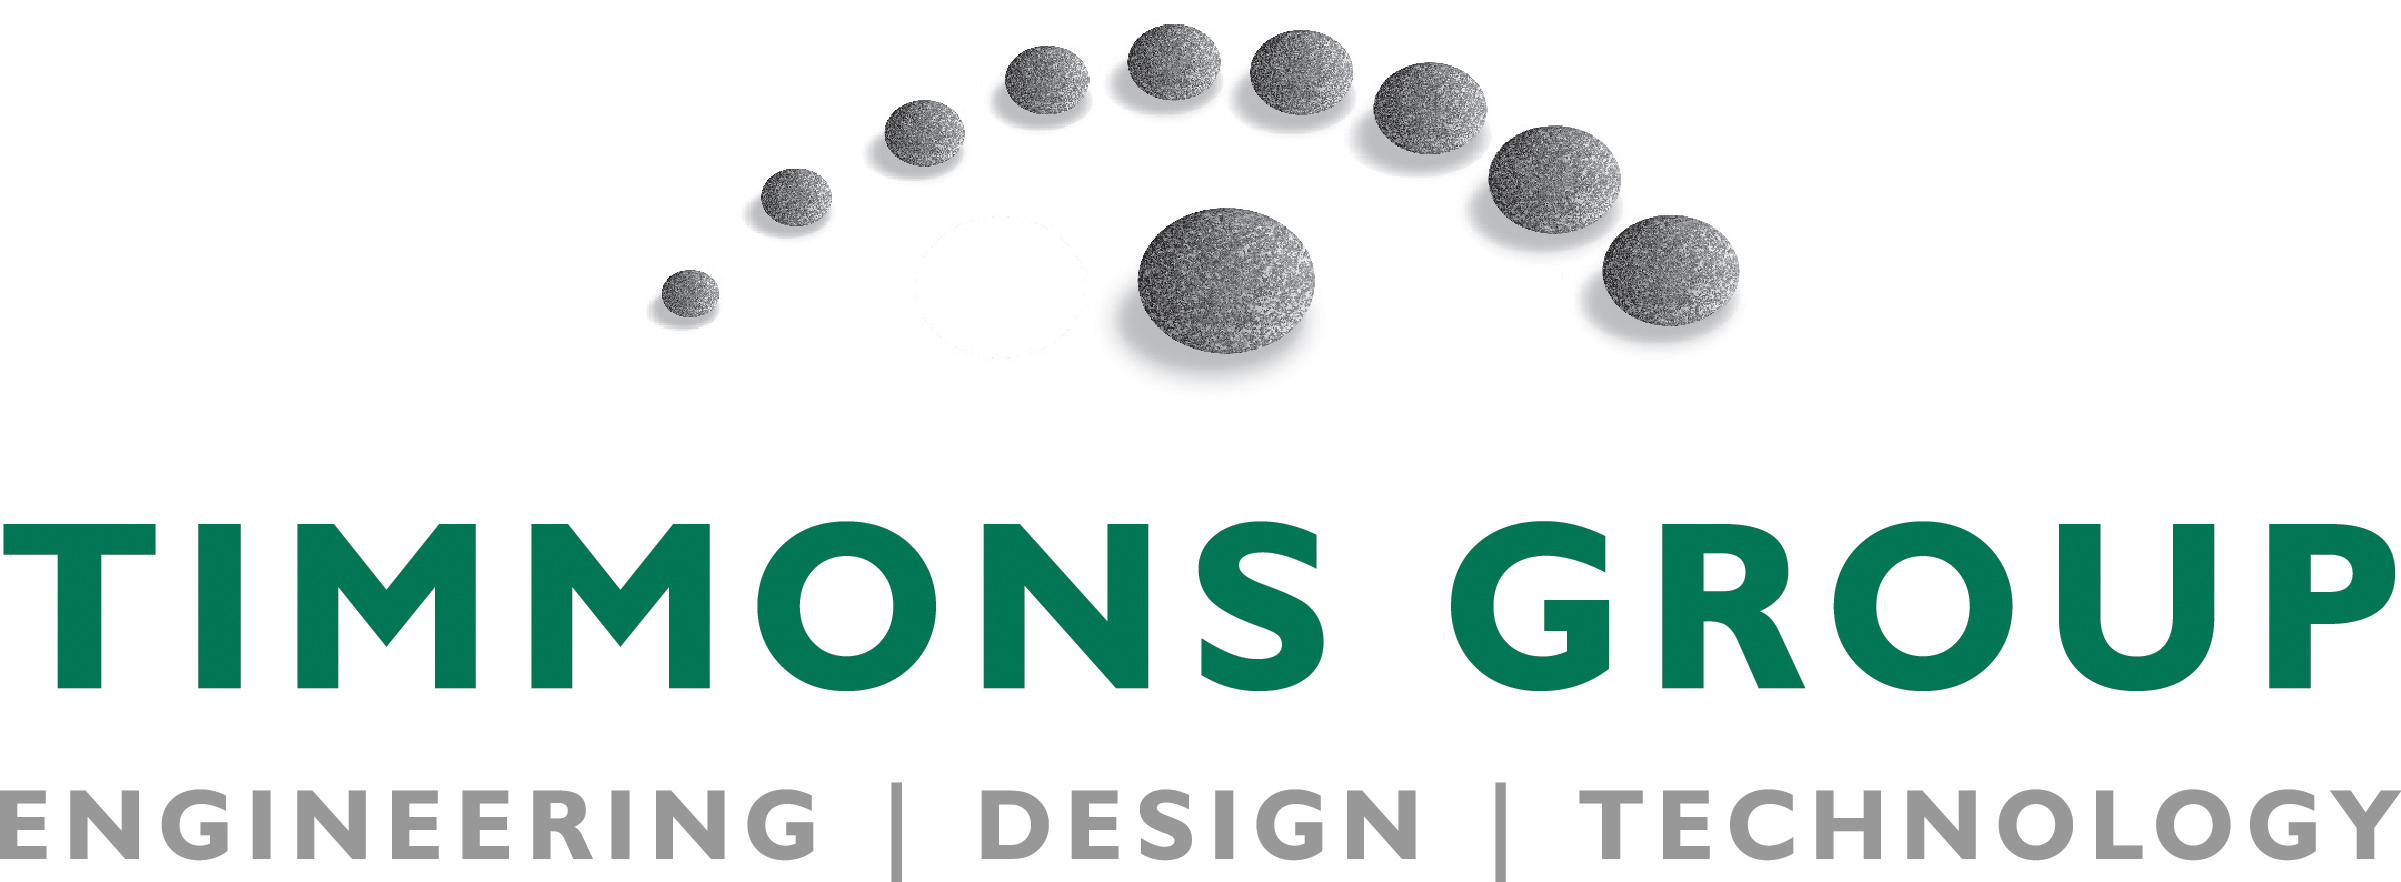 Timmons Group Company Logo